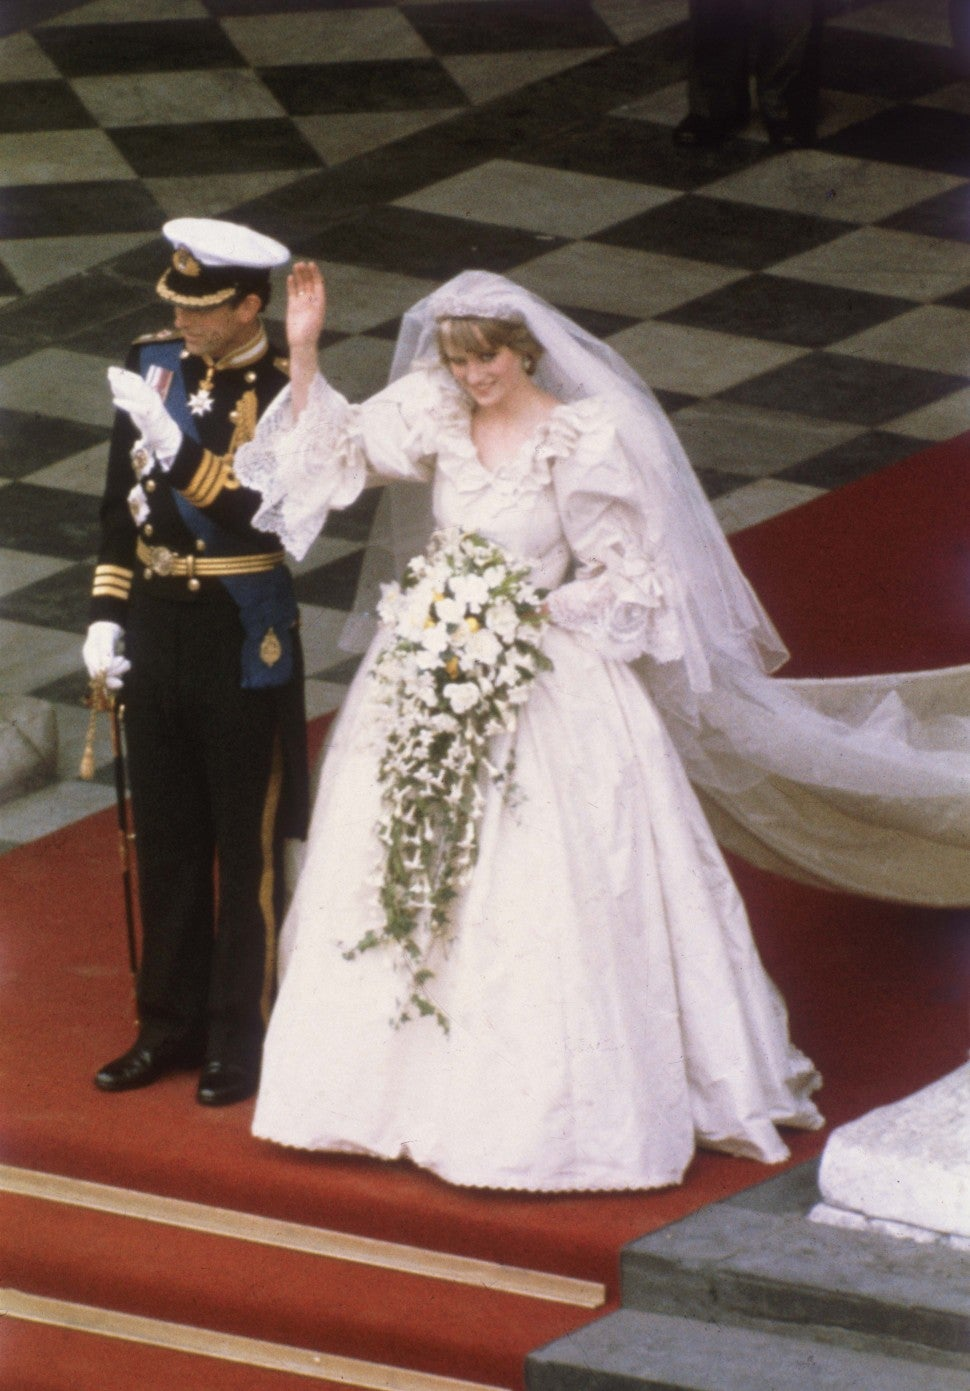 Princess Diana marries Prince Charles in London on July 29, 1981